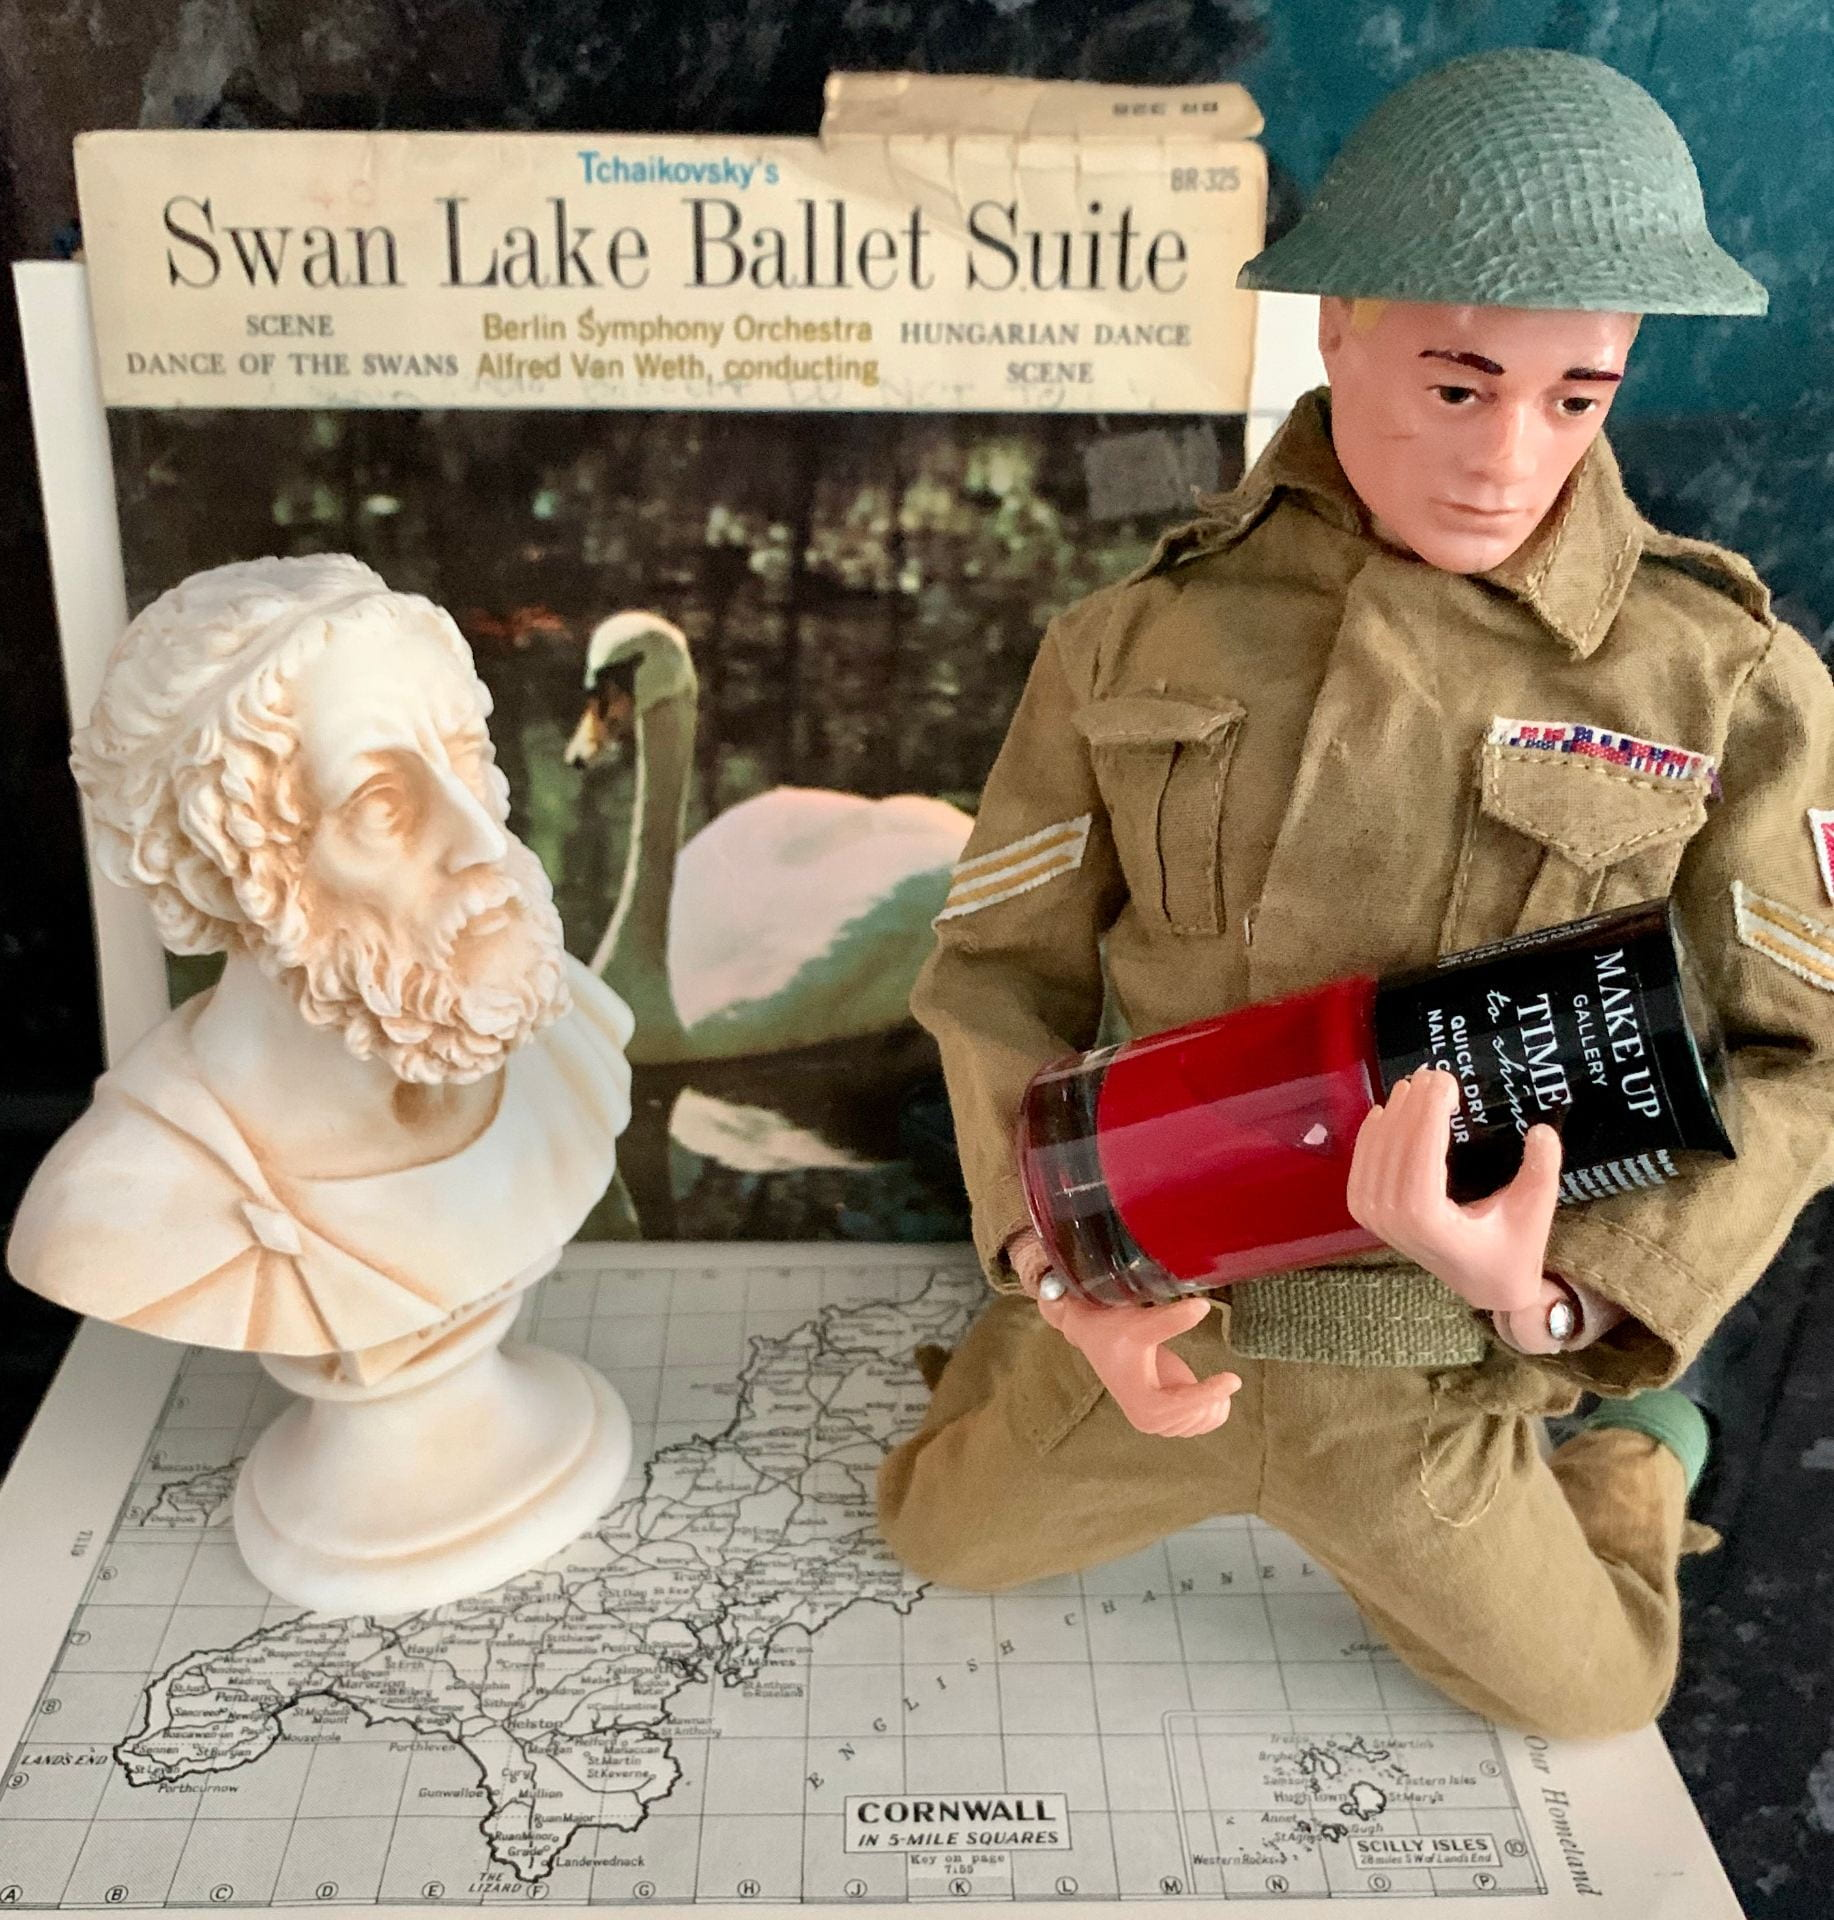 A classical bust and an 'Action Man' toy (holding nail varnish) on top of a map of Cornwall. Behind them is a the sleeve of a vinyl record: Tchaikovsky's Swan Lake Ballet Suite.